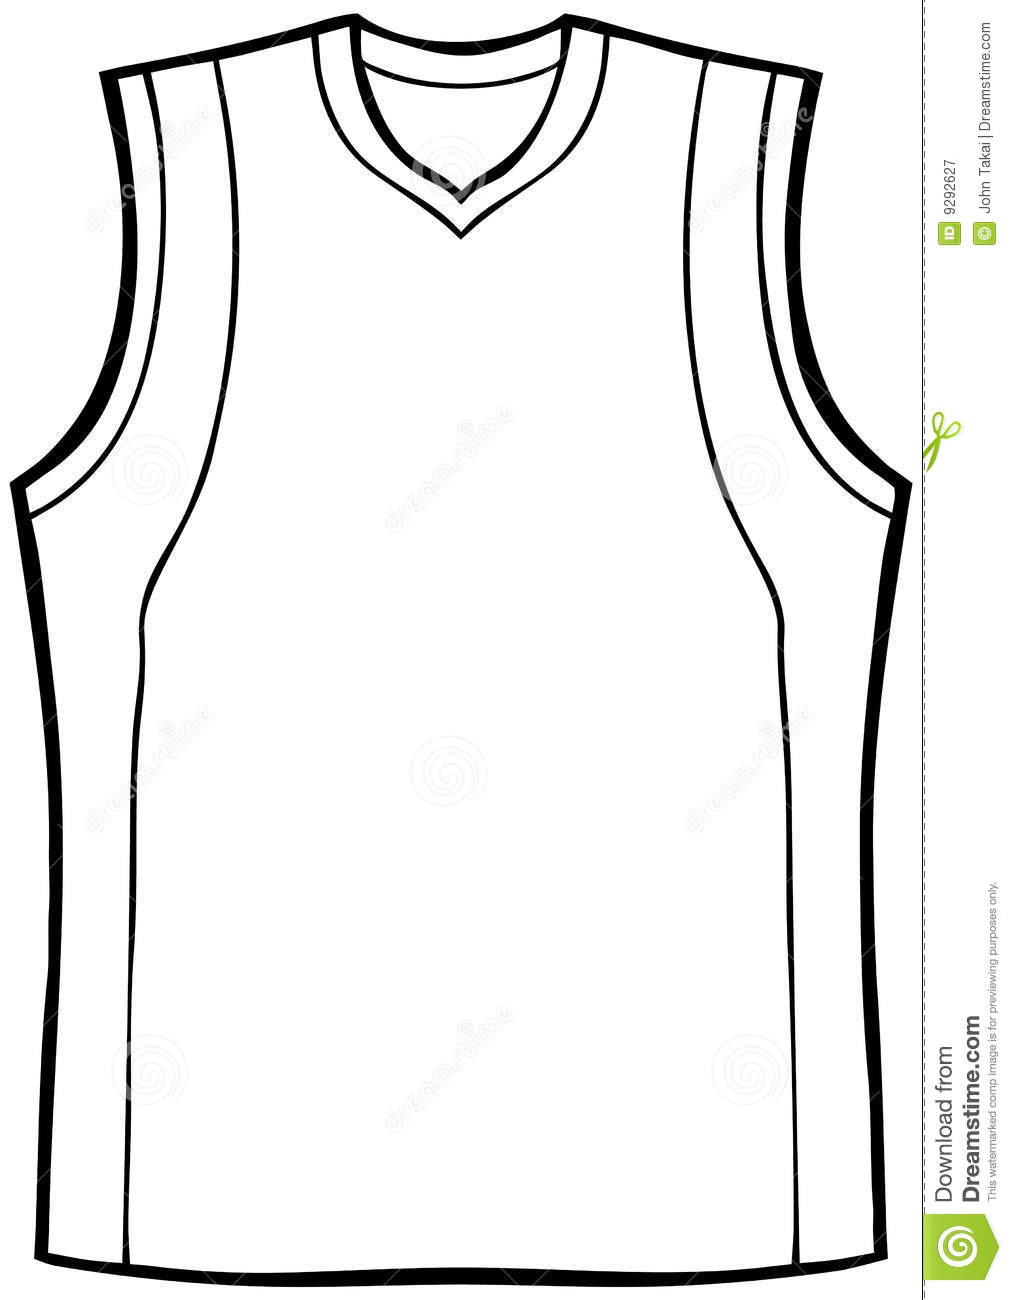 Blank Basketball Jersey Clipart Free Download Best Blank